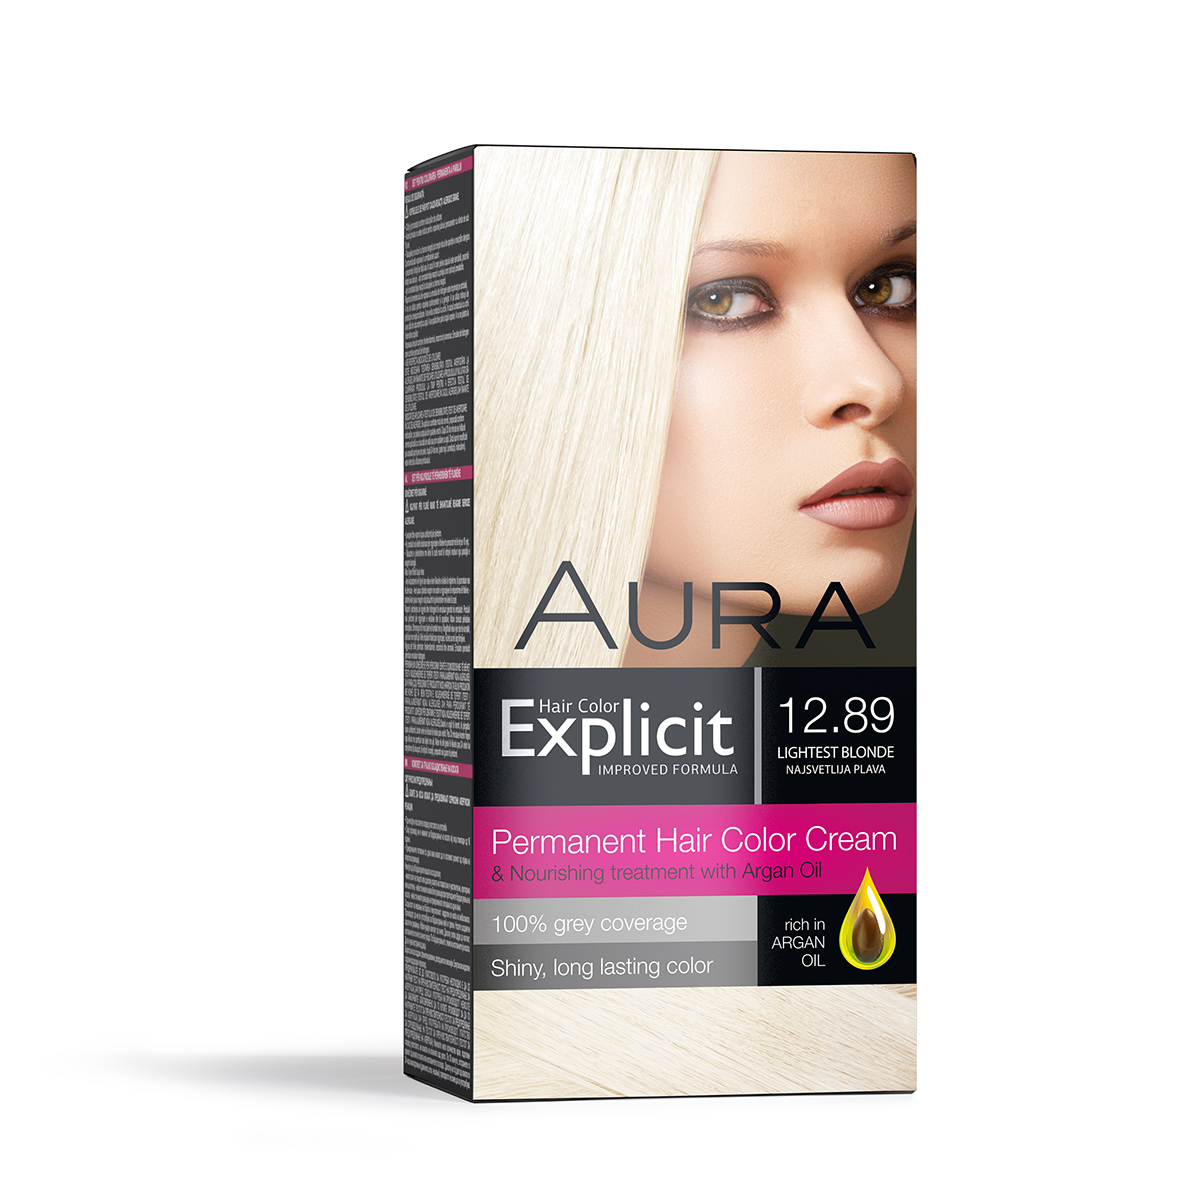 Set za trajno bojenje kose EXPLICIT 12.89 Lightest blonde / Najsvetlije plava